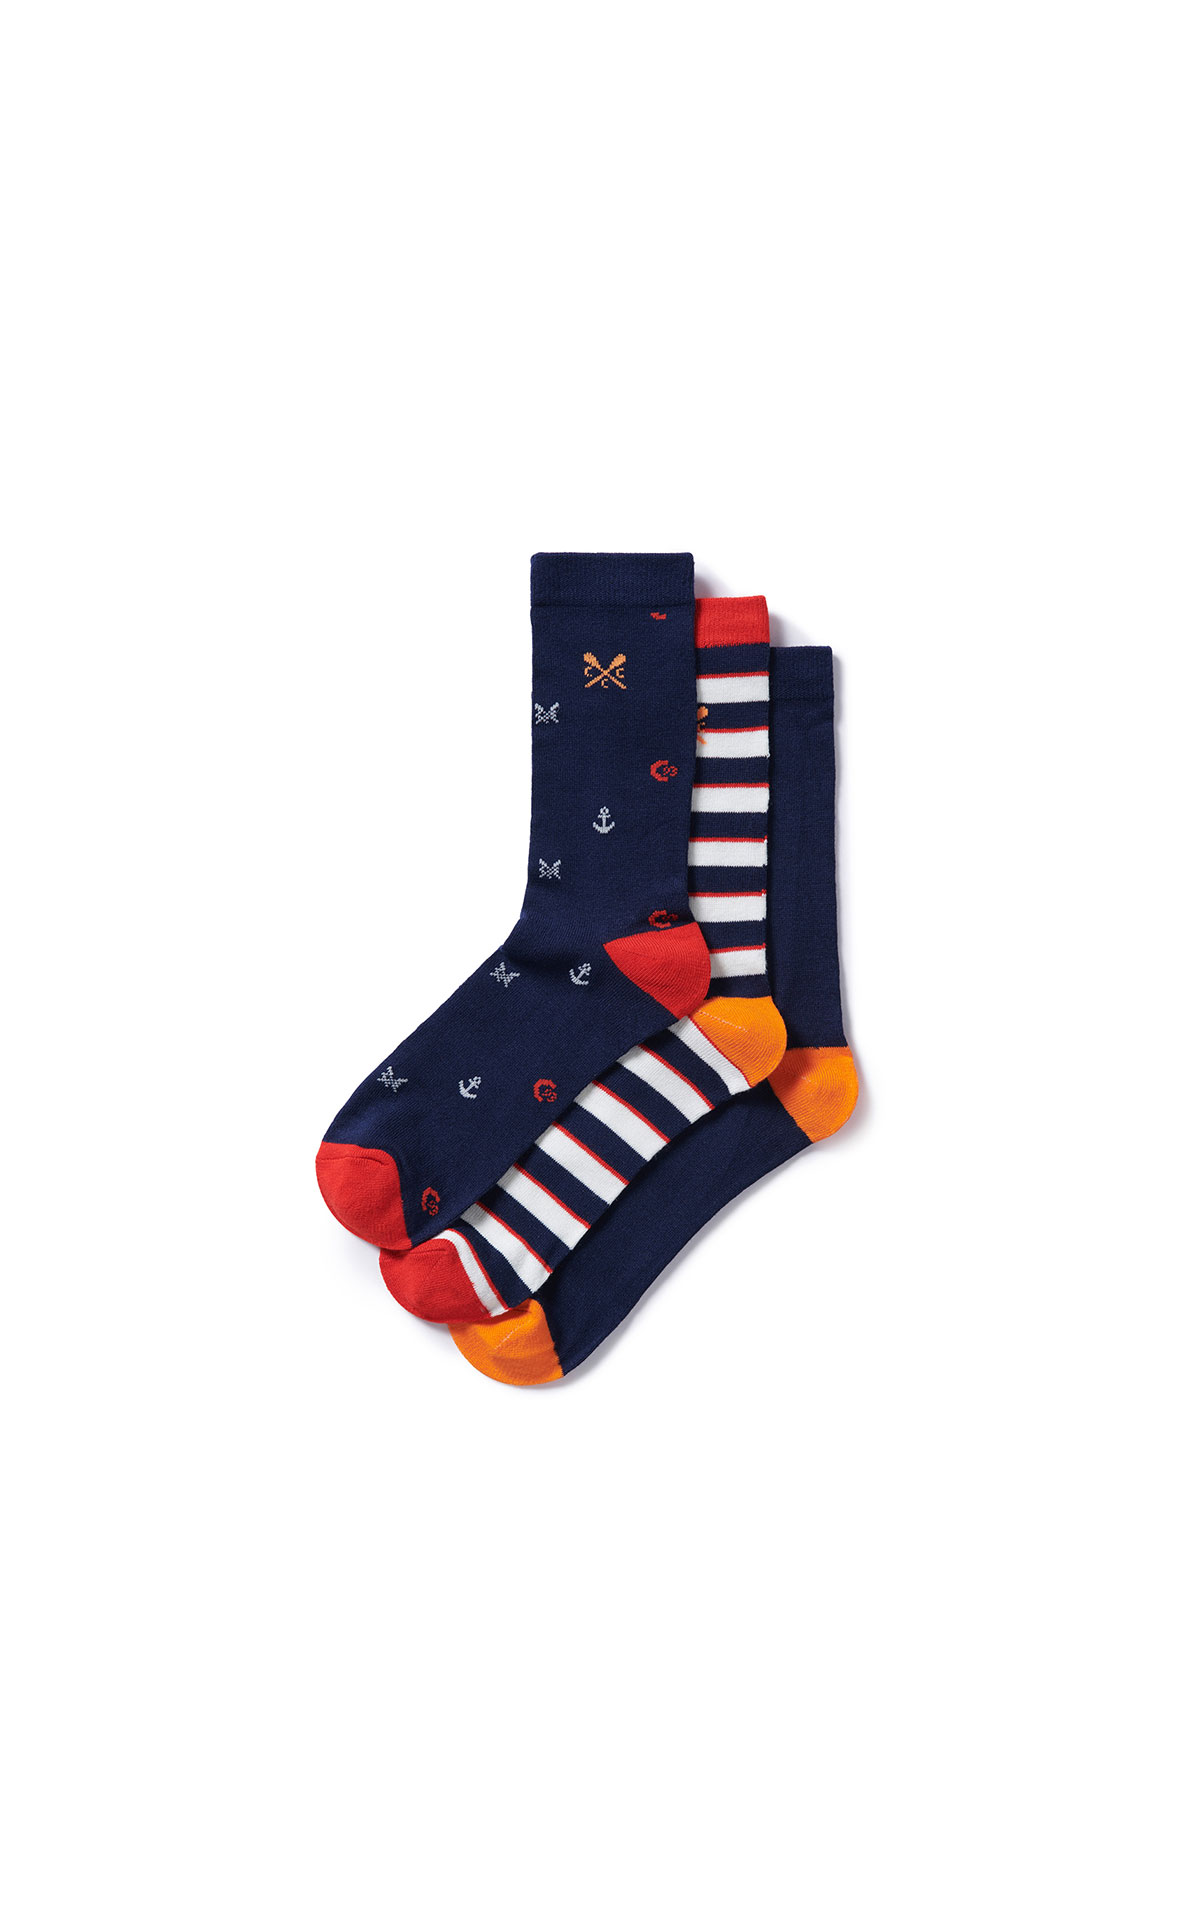 Savoy Taylors Guild Crew Clothing Company socks from Bicester Village